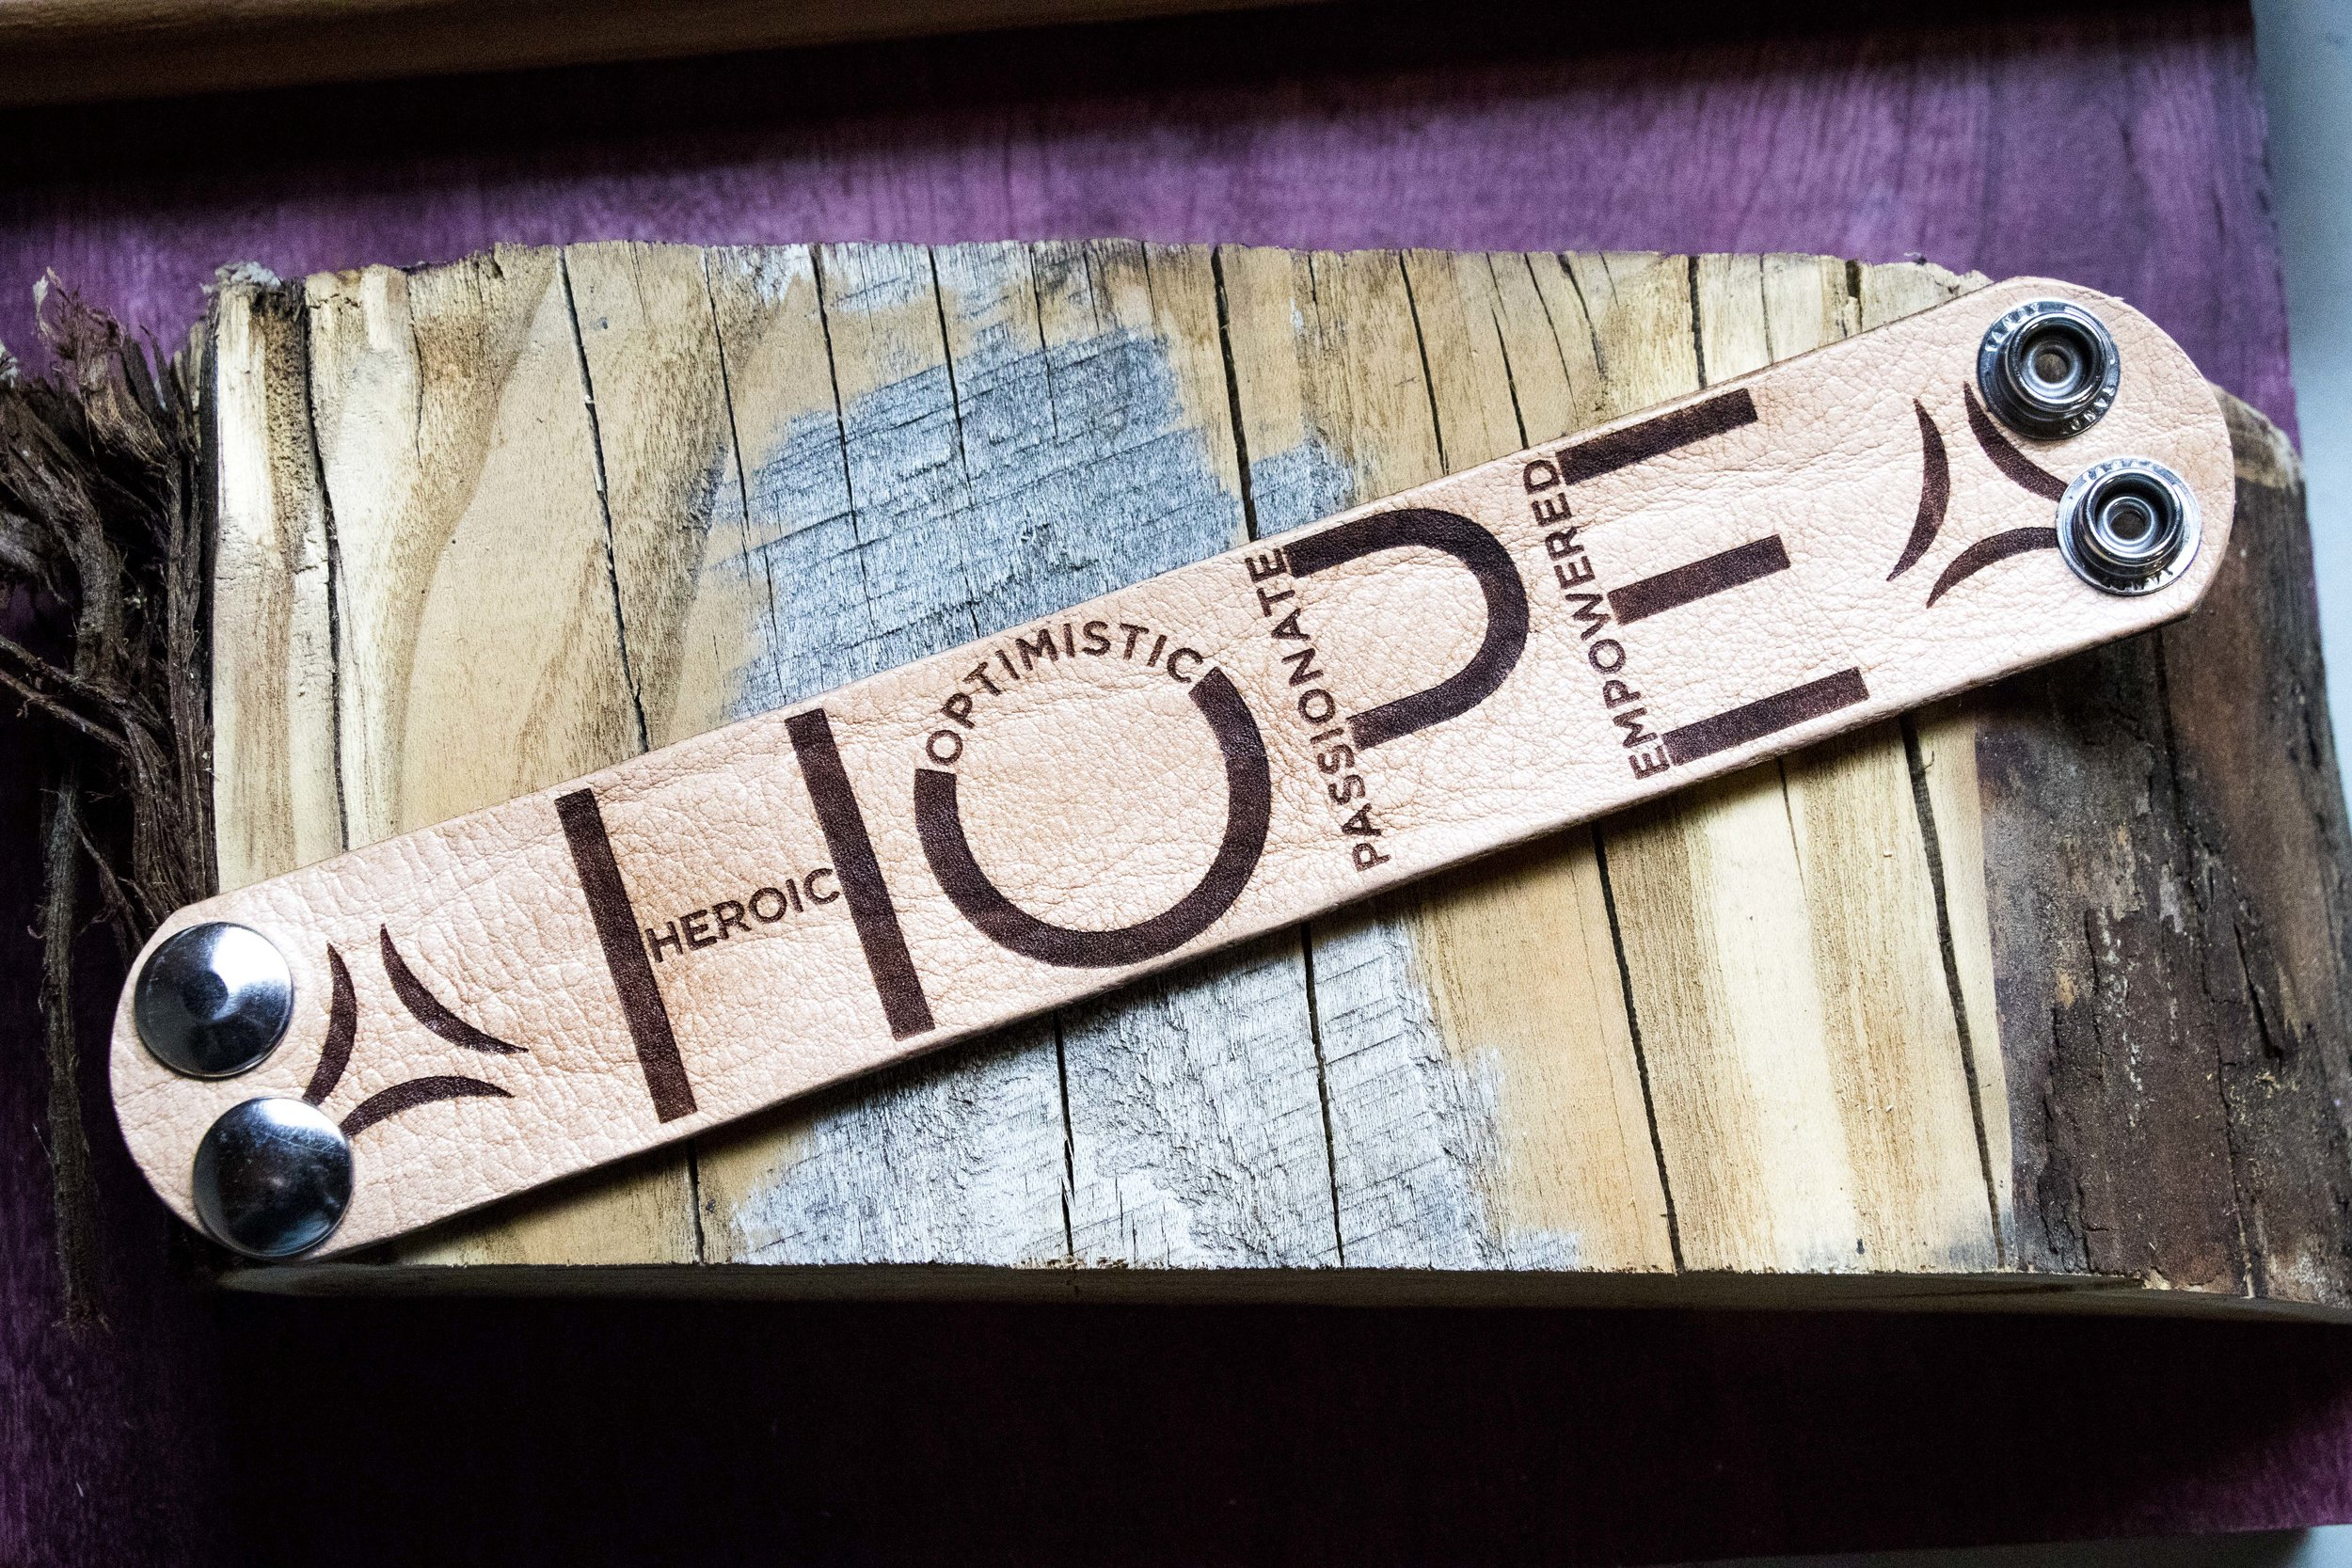 Hope band open_small file_img_6783.jpg